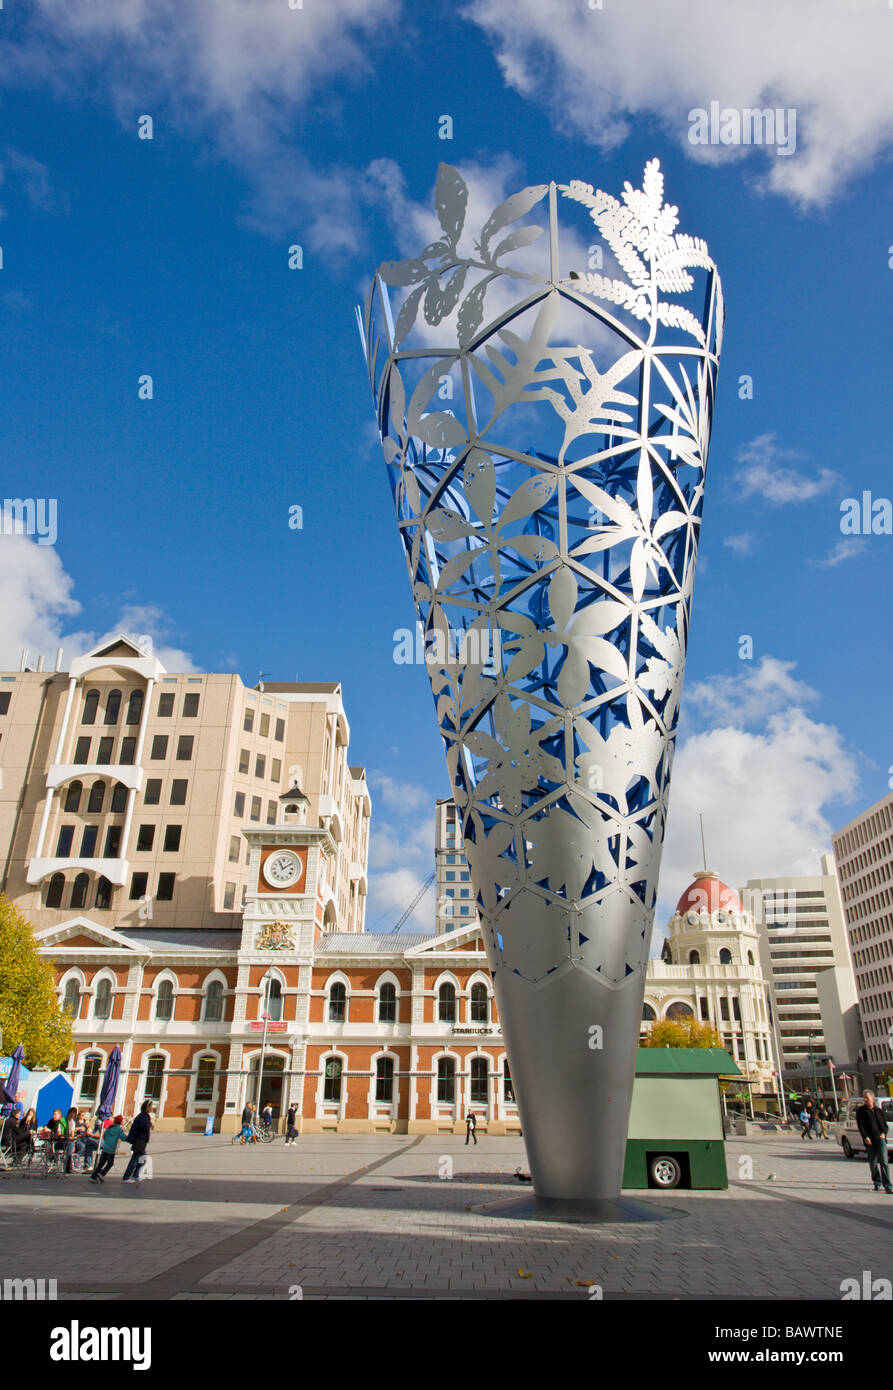 The Chalice Cathedral Square Christchurch Canterbury South Island New Zealand - Stock Image